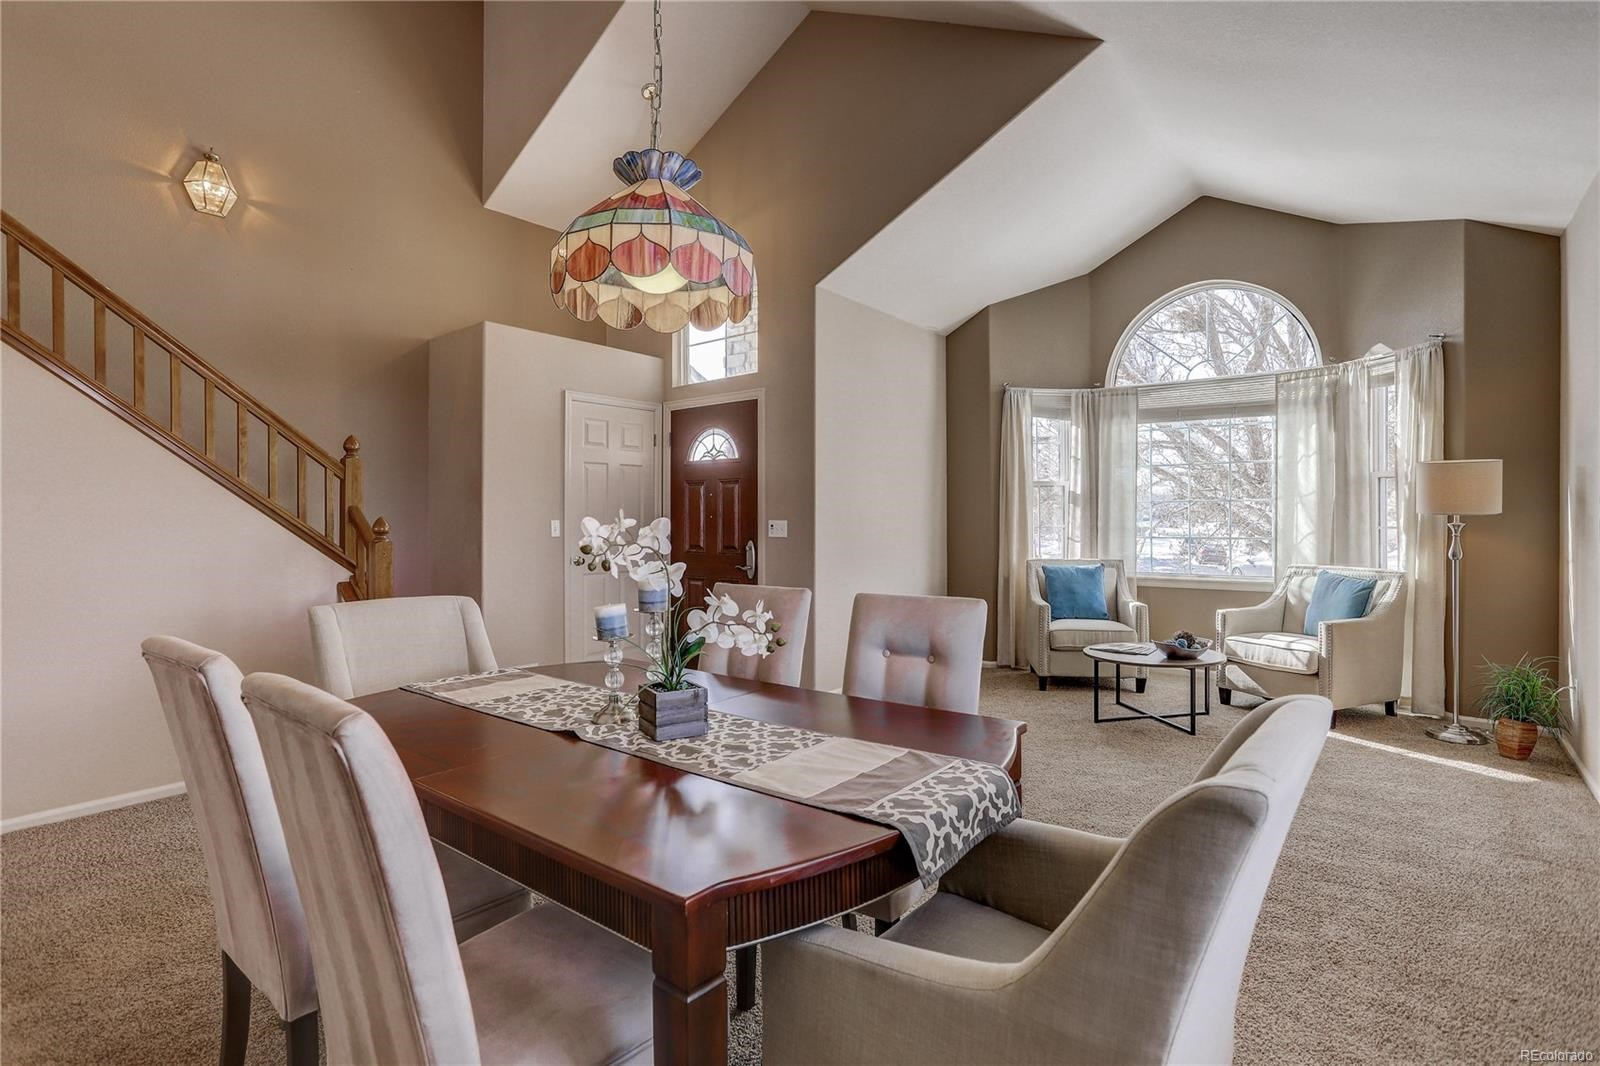 MLS# 8327774 - 6 - 806 W 127th Court, Westminster, CO 80234